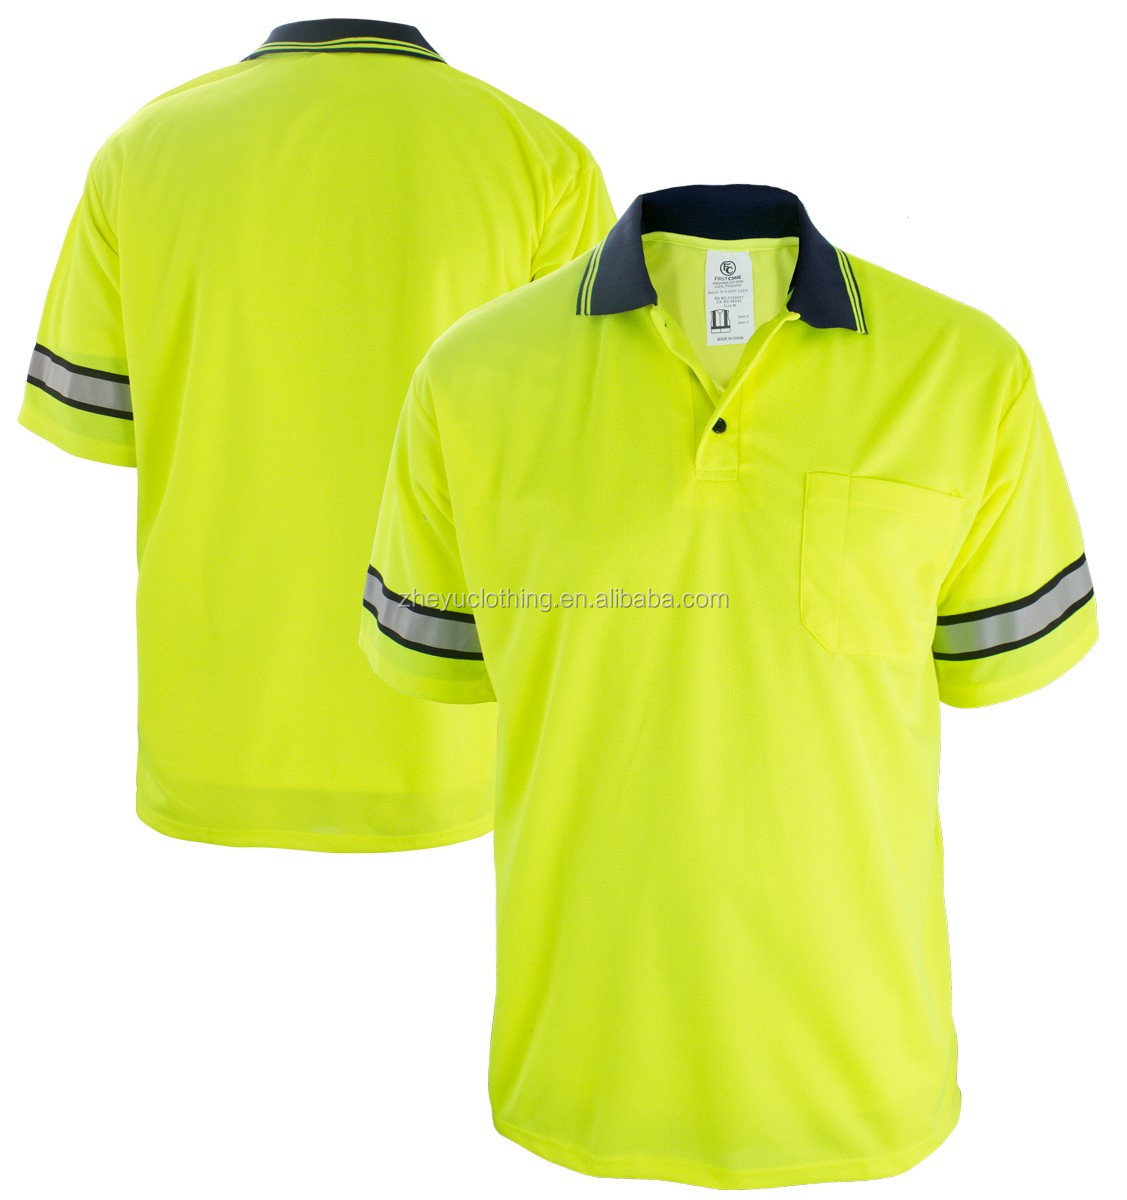 Two Tone Color Blank Tee Bulk Manufacturer Custom chest pocket poloshirts